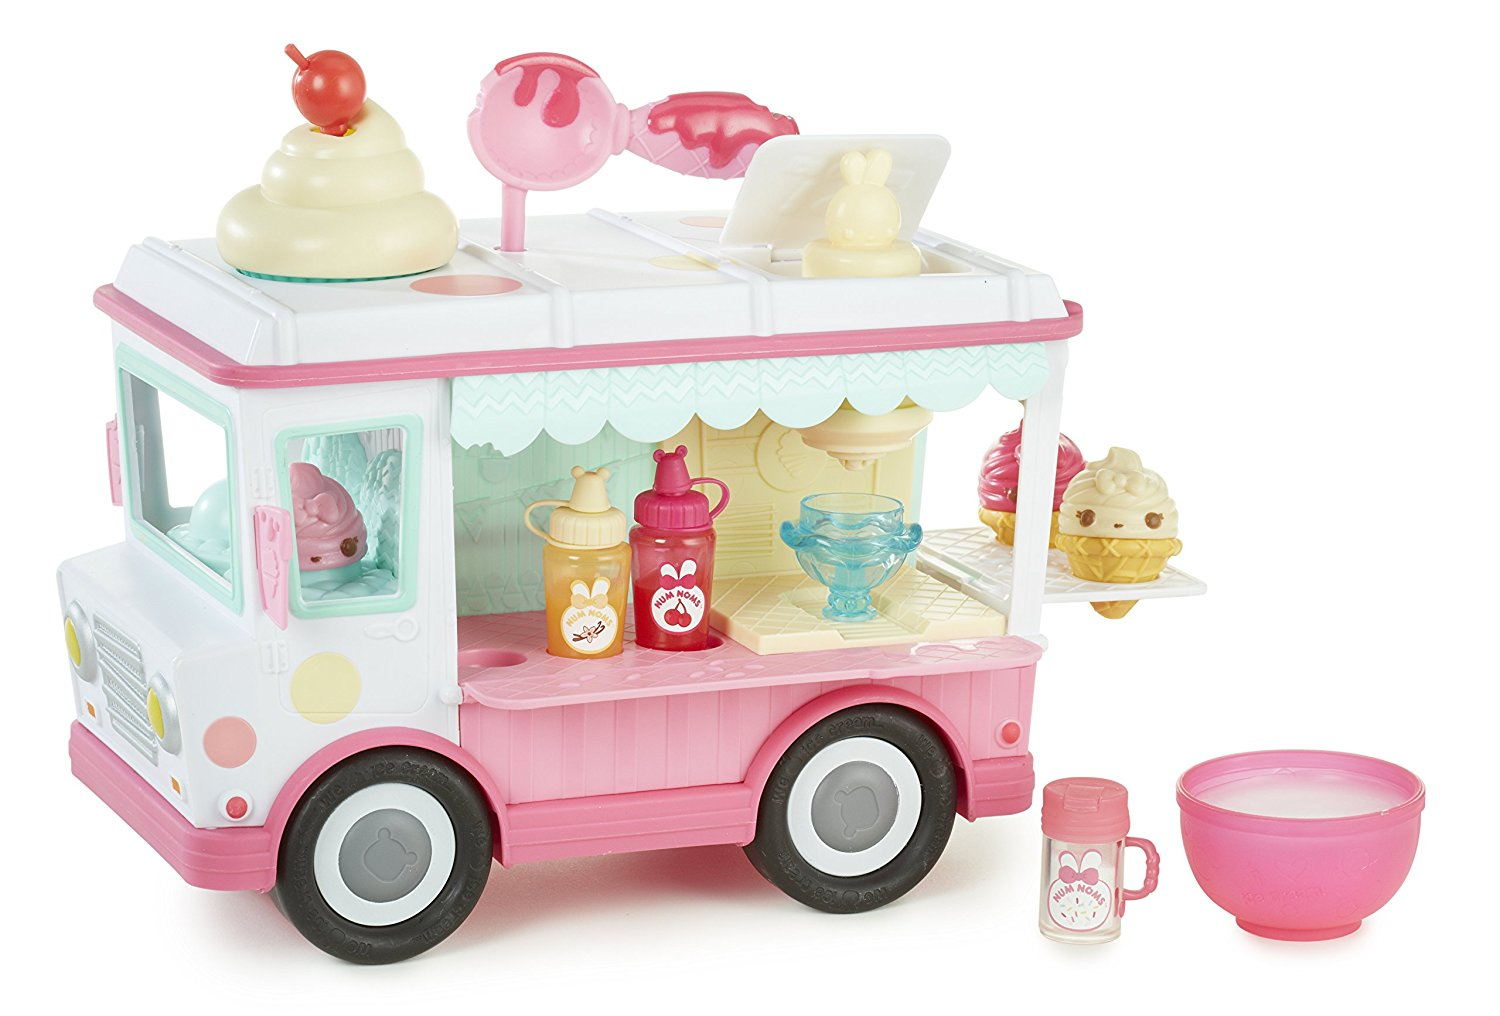 Num Noms Lipgloss Truck Craft Kit – Only $26.49 Plus Free Shipping